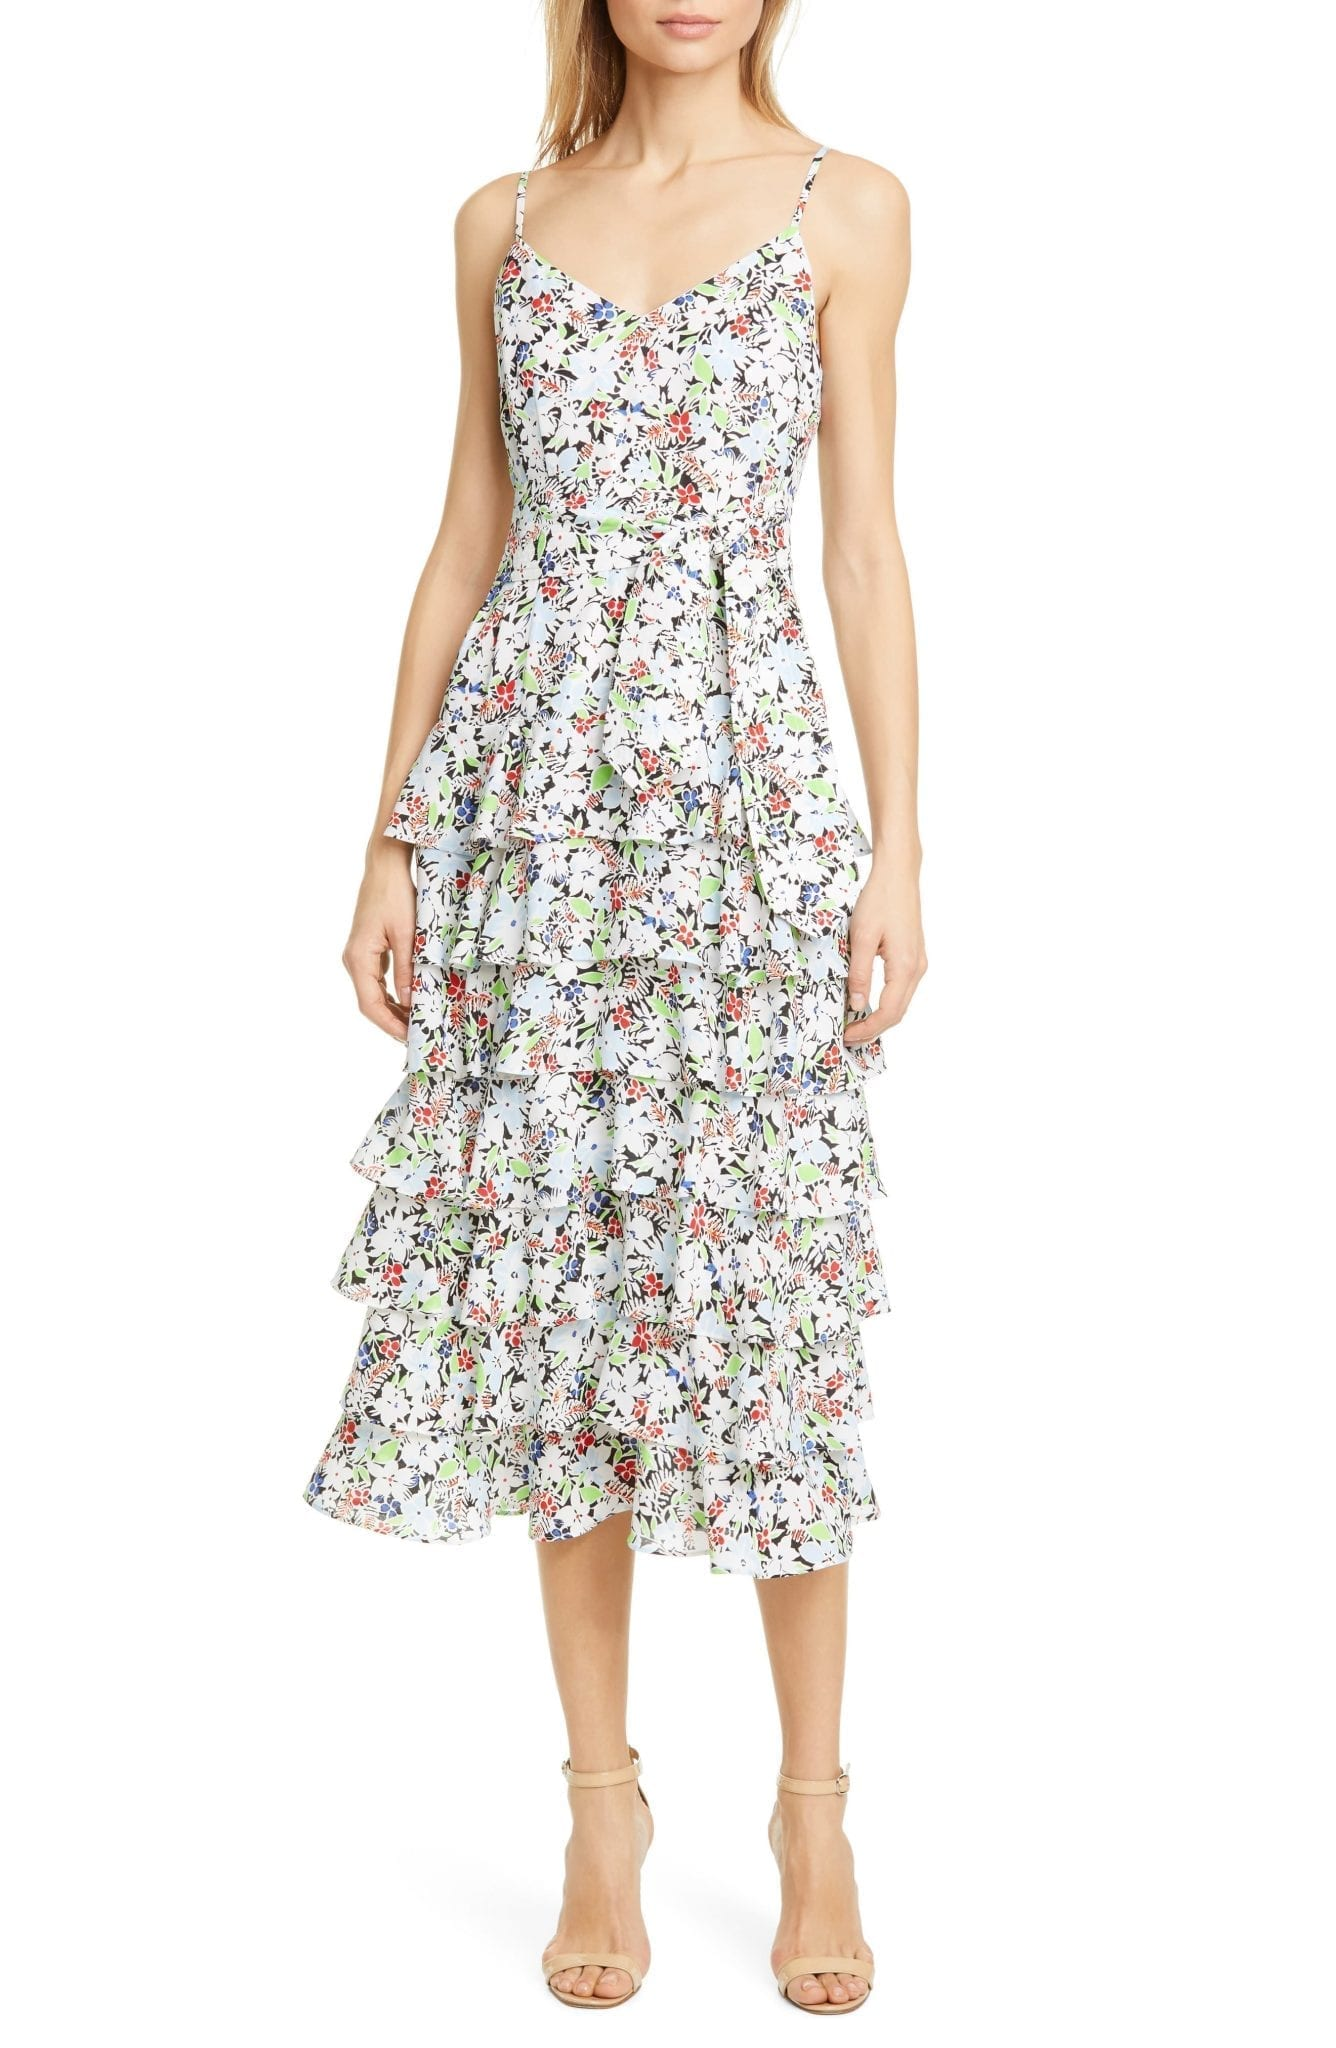 LIKELY Ariella Floral Tiered Ruffle Sun Dress